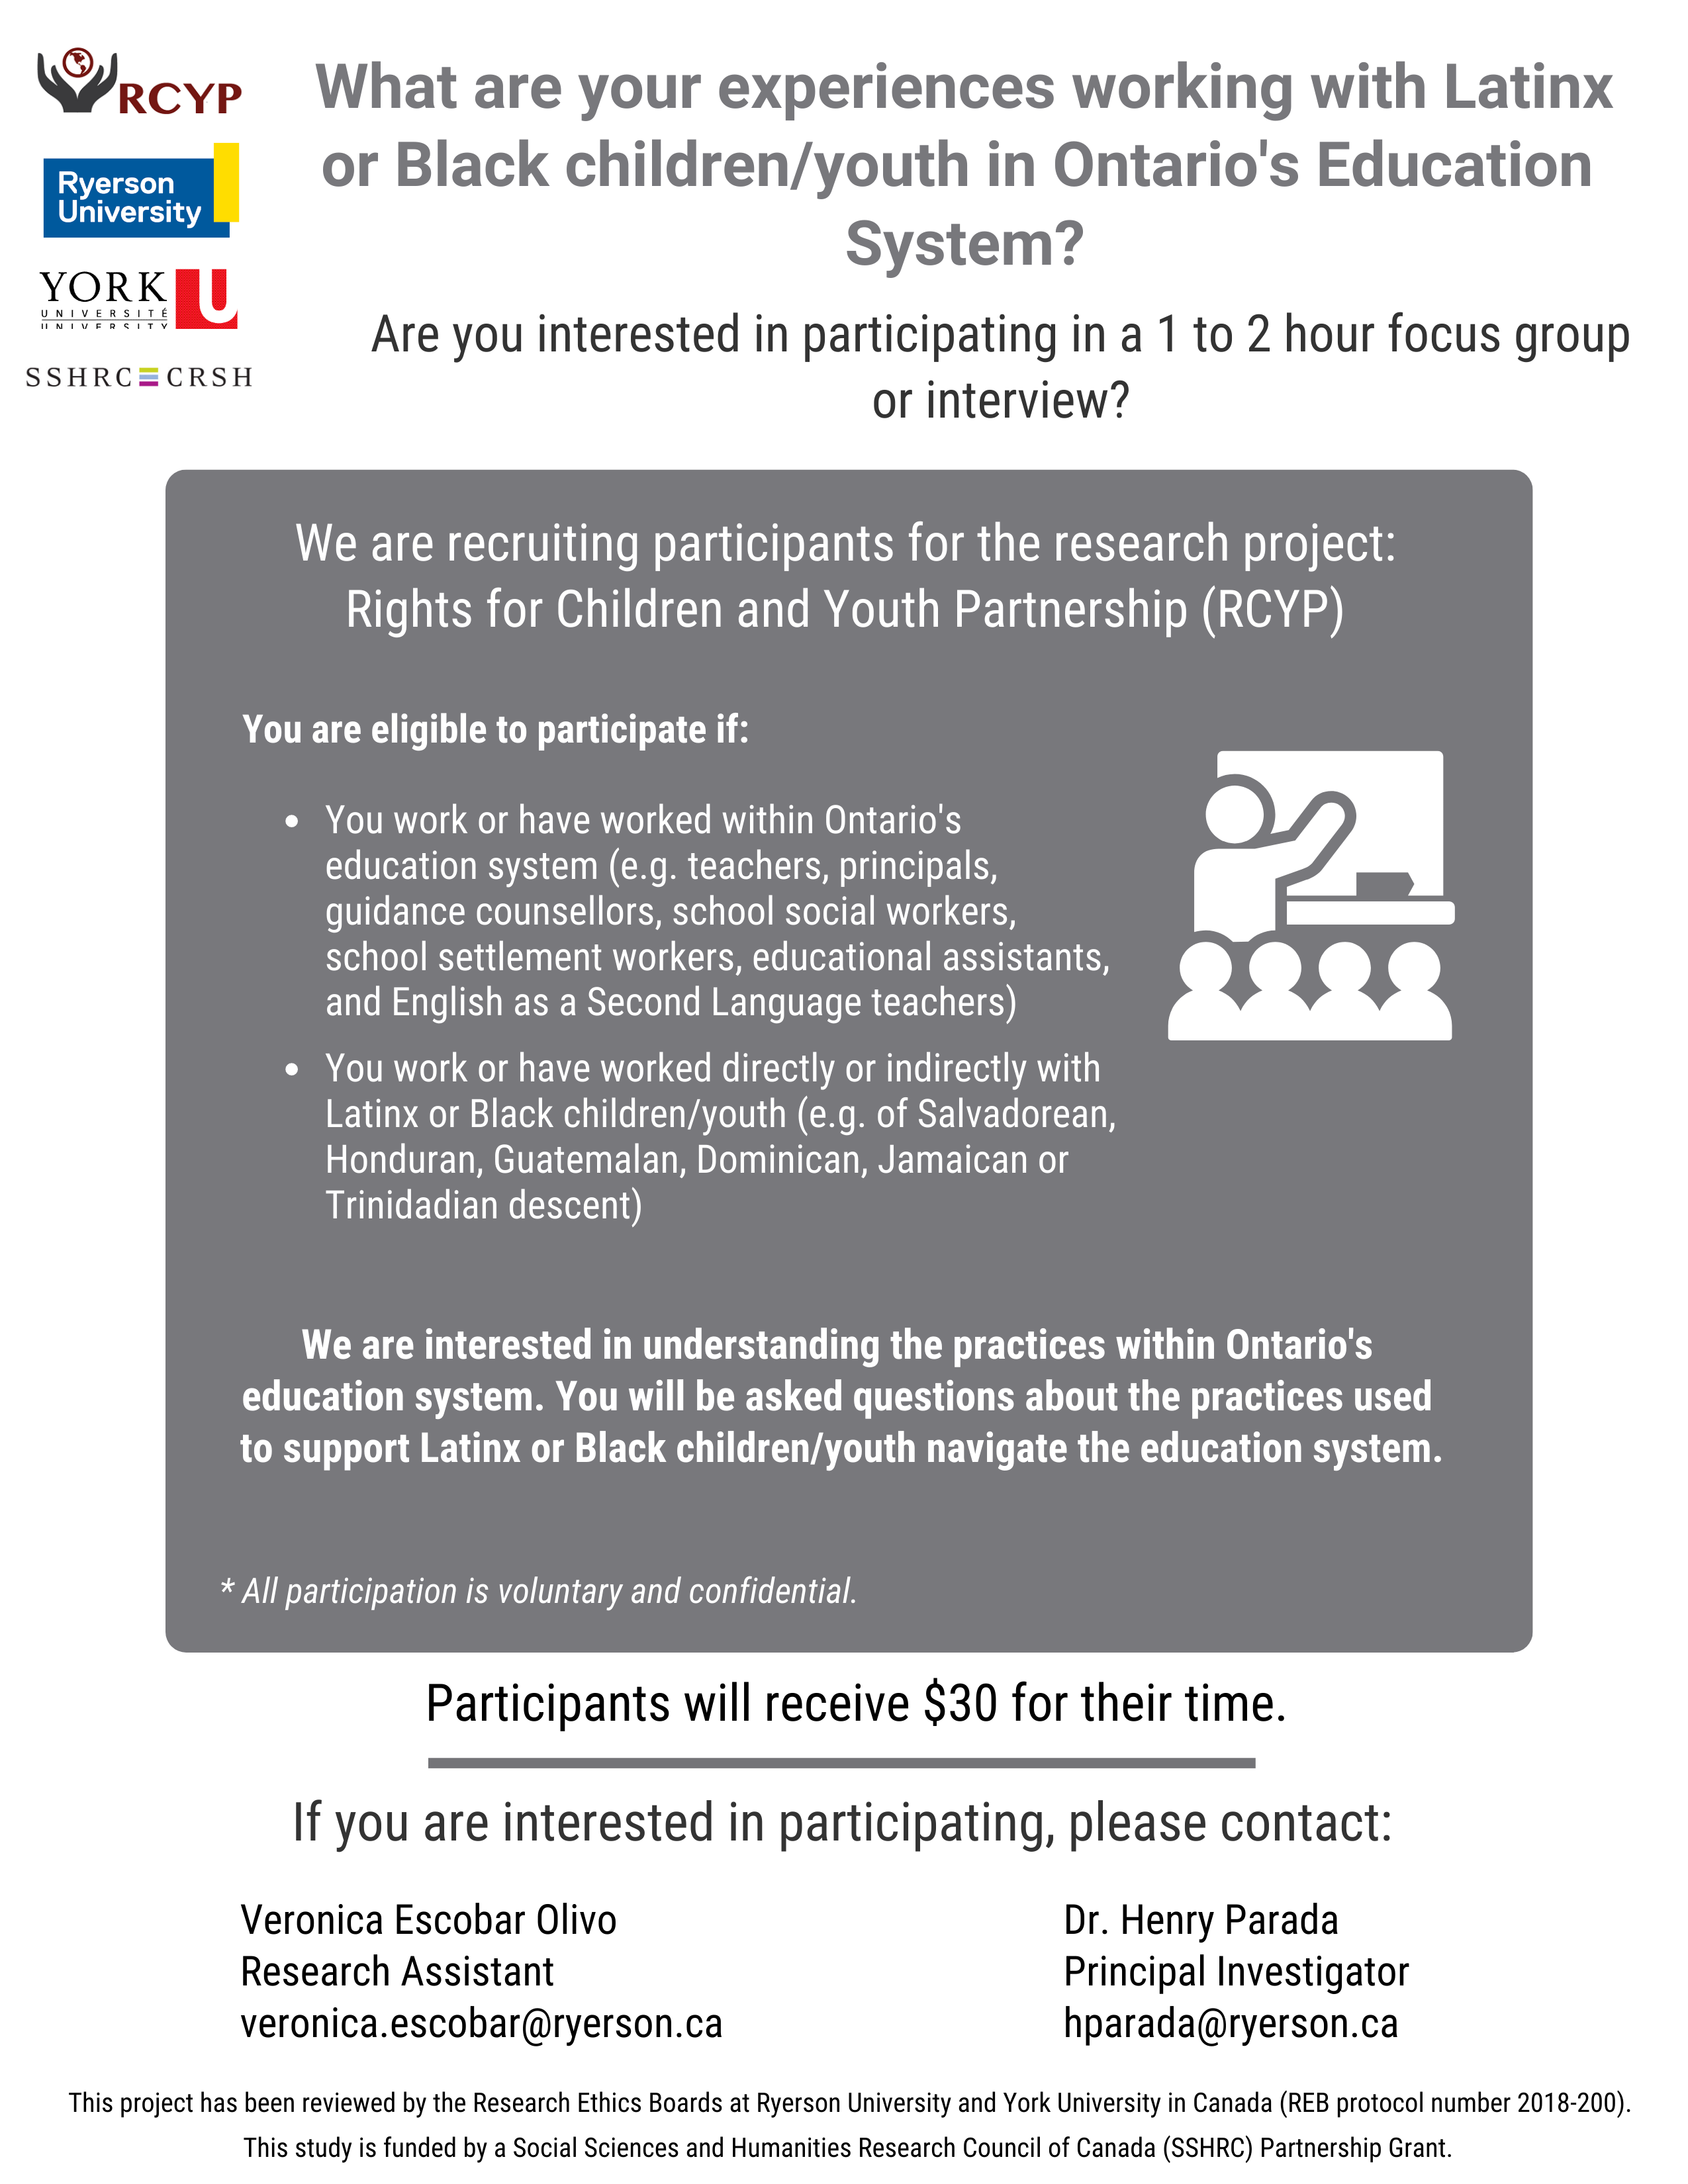 """Participant Recruitment flyer. Text reads: """"We are recruiting participants for the research project: Rights for Children and Youth Partnership project. You are eligible to participate if: You work or have worked within Ontario's education system (e.g. teachers, principals, guidance counsellors, school social workers, school settlement workers, educational assistants, and English as a Second Language teachers) and/or You work or have worked directly or indirectly with Latinx or Black children/youth (e.g. of Salvadorean, Honduran, Guatemalan, Dominican, Jamaican or Trinidadian descent). please email veronica.escobar@ryerson.ca to express interest."""""""